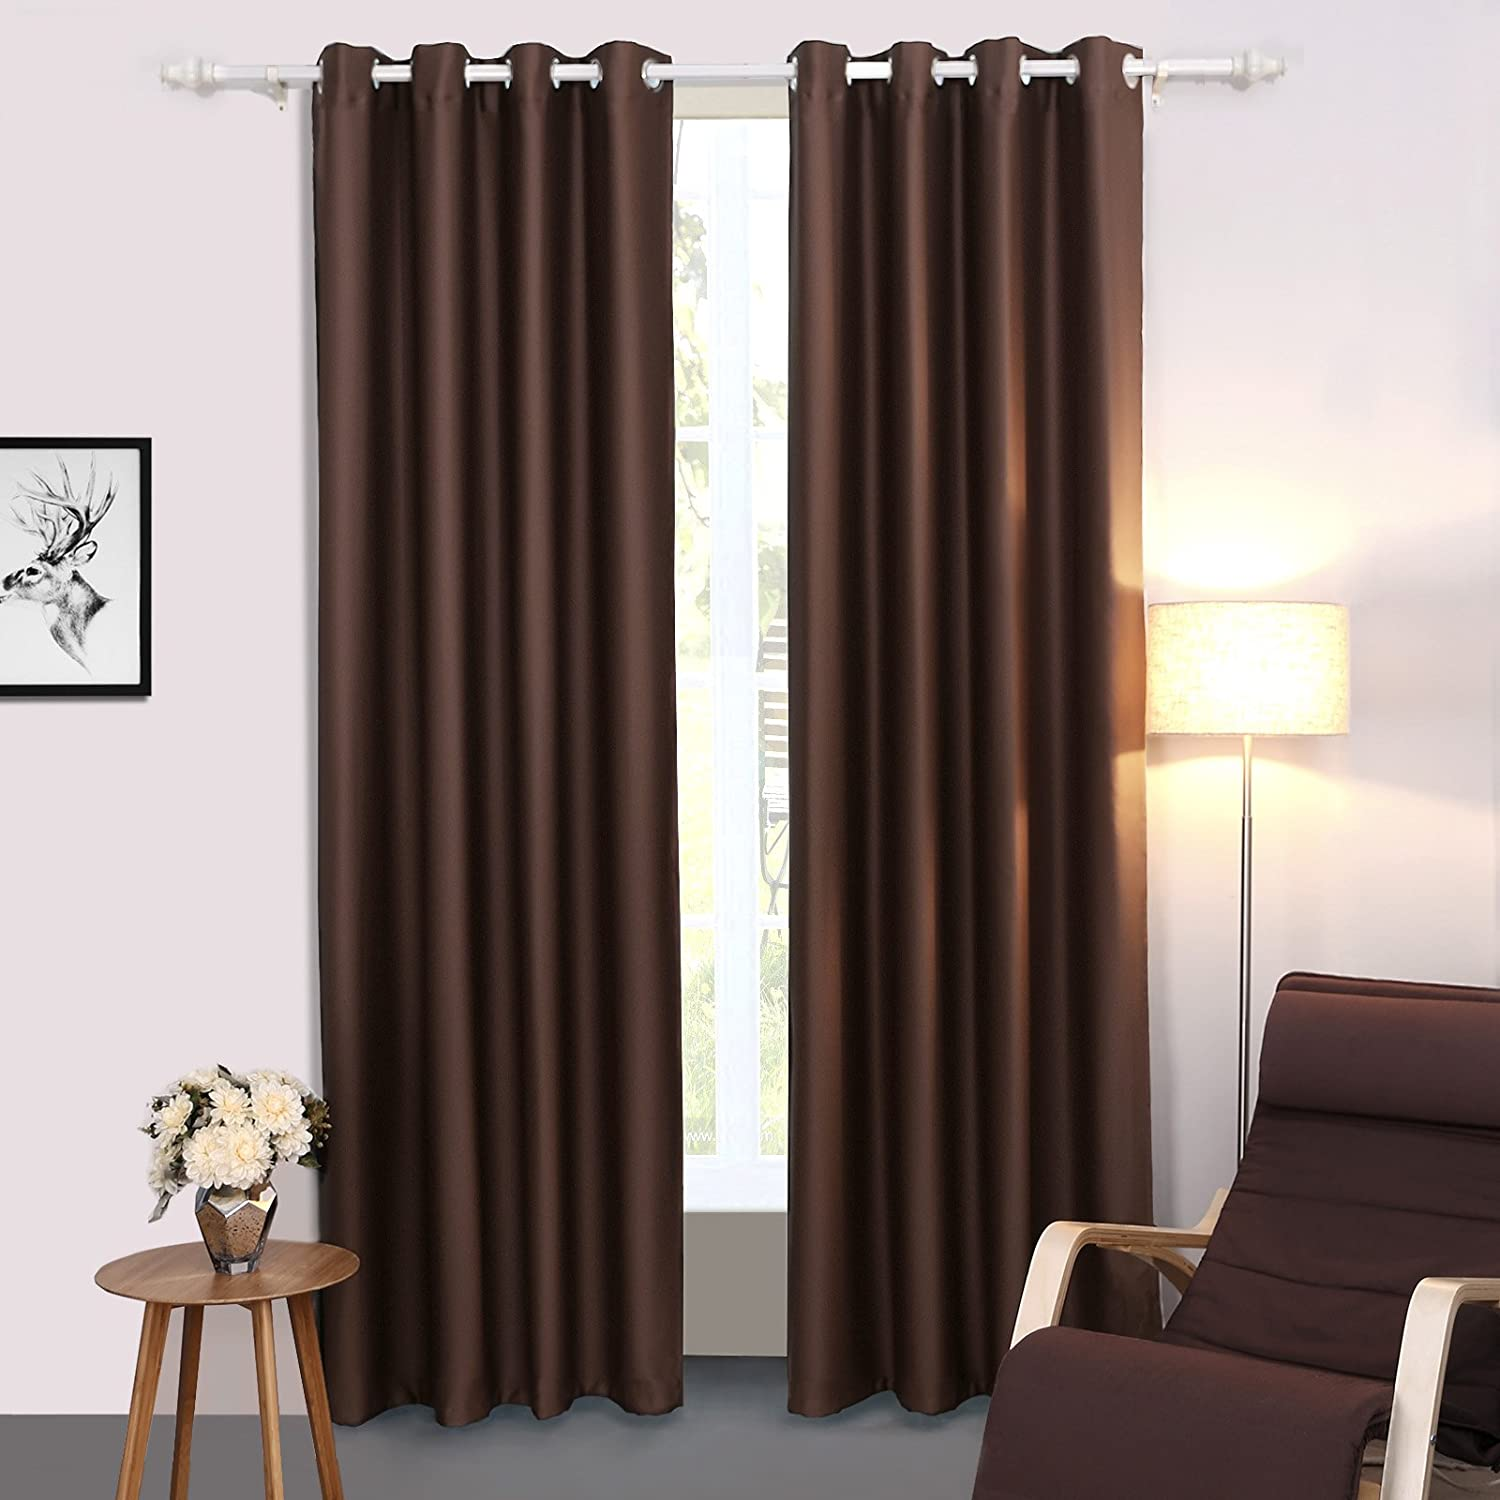 Songmics Cortinas 2 piezas Blackout curtain opaca con ojales 145 x 245 cm Chocolate LRB245K-2: Amazon.es: Hogar